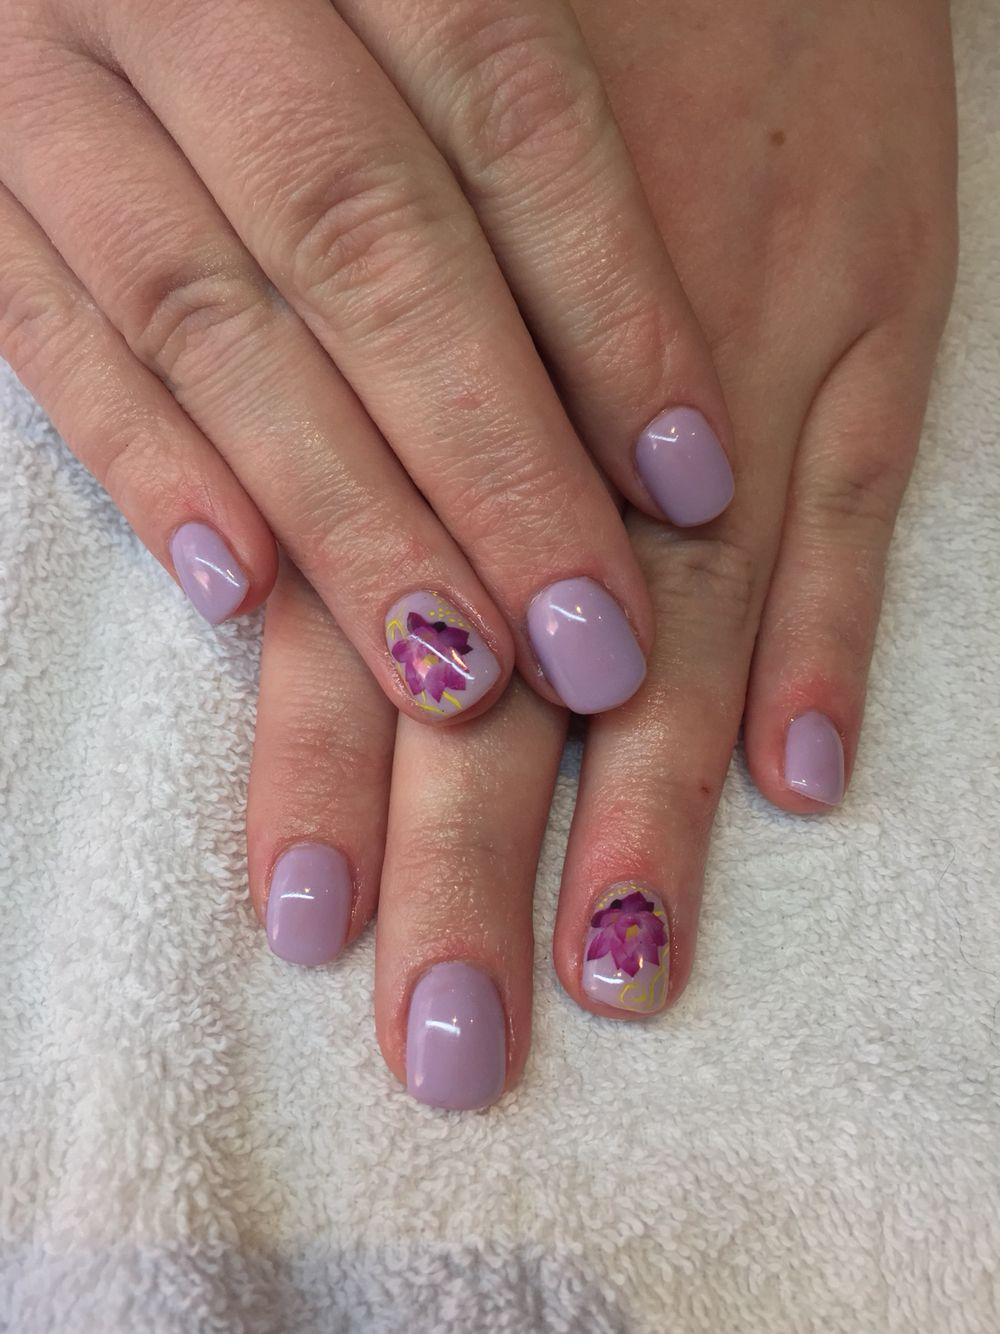 Acrylic nails in pastel purple with water decal nail art   My work ...